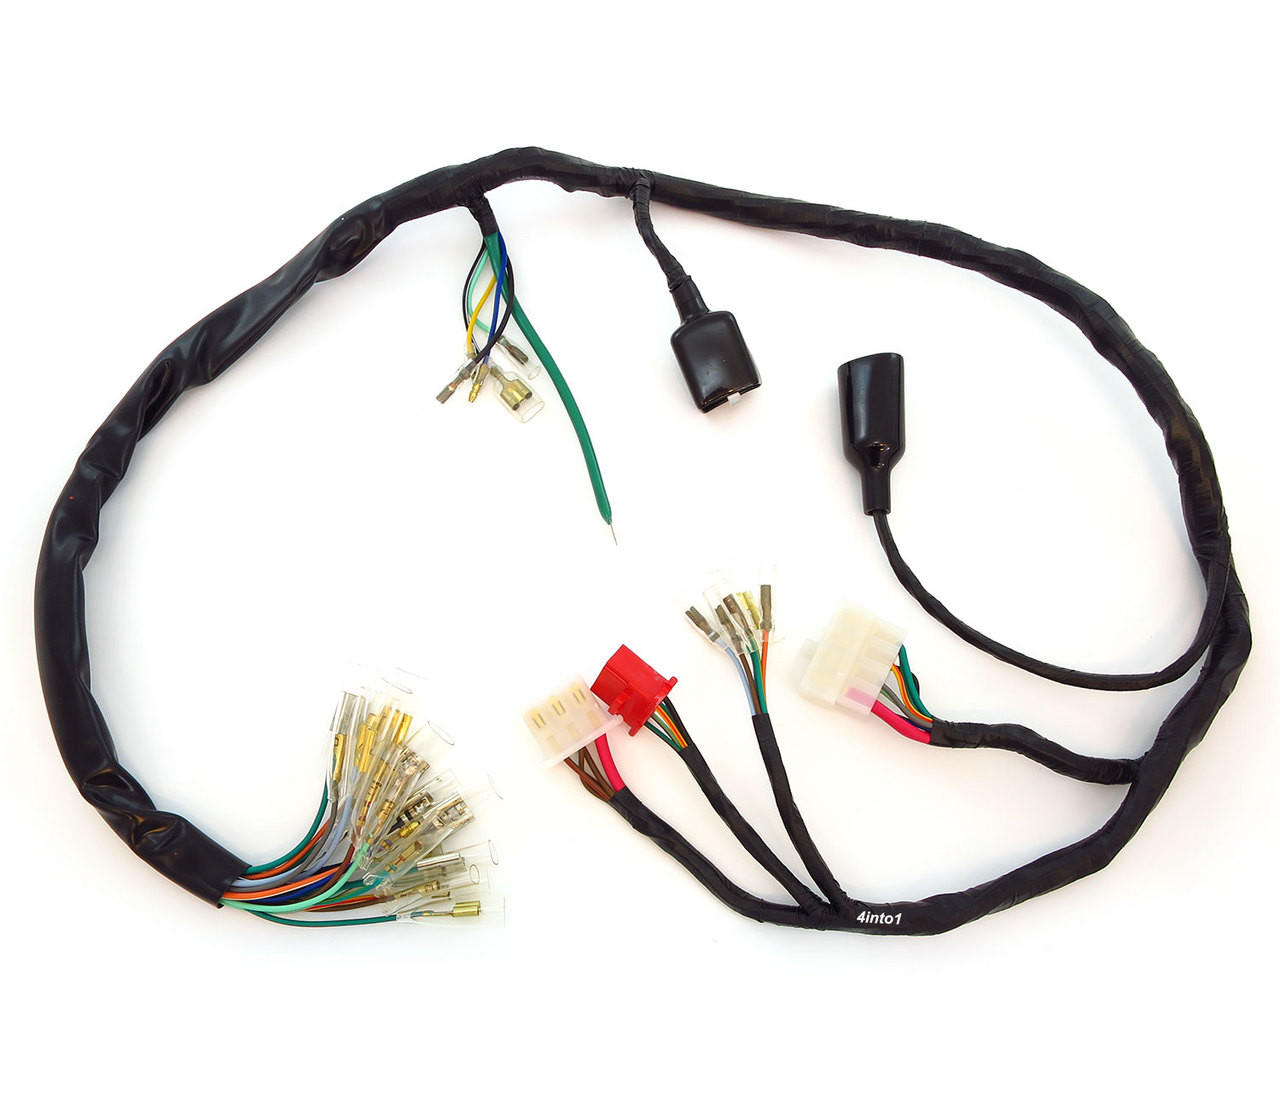 honda ct90 wiring harness wiring diagram on honda ct90 parts diagram honda ct90 cylinder  [ 1280 x 1113 Pixel ]